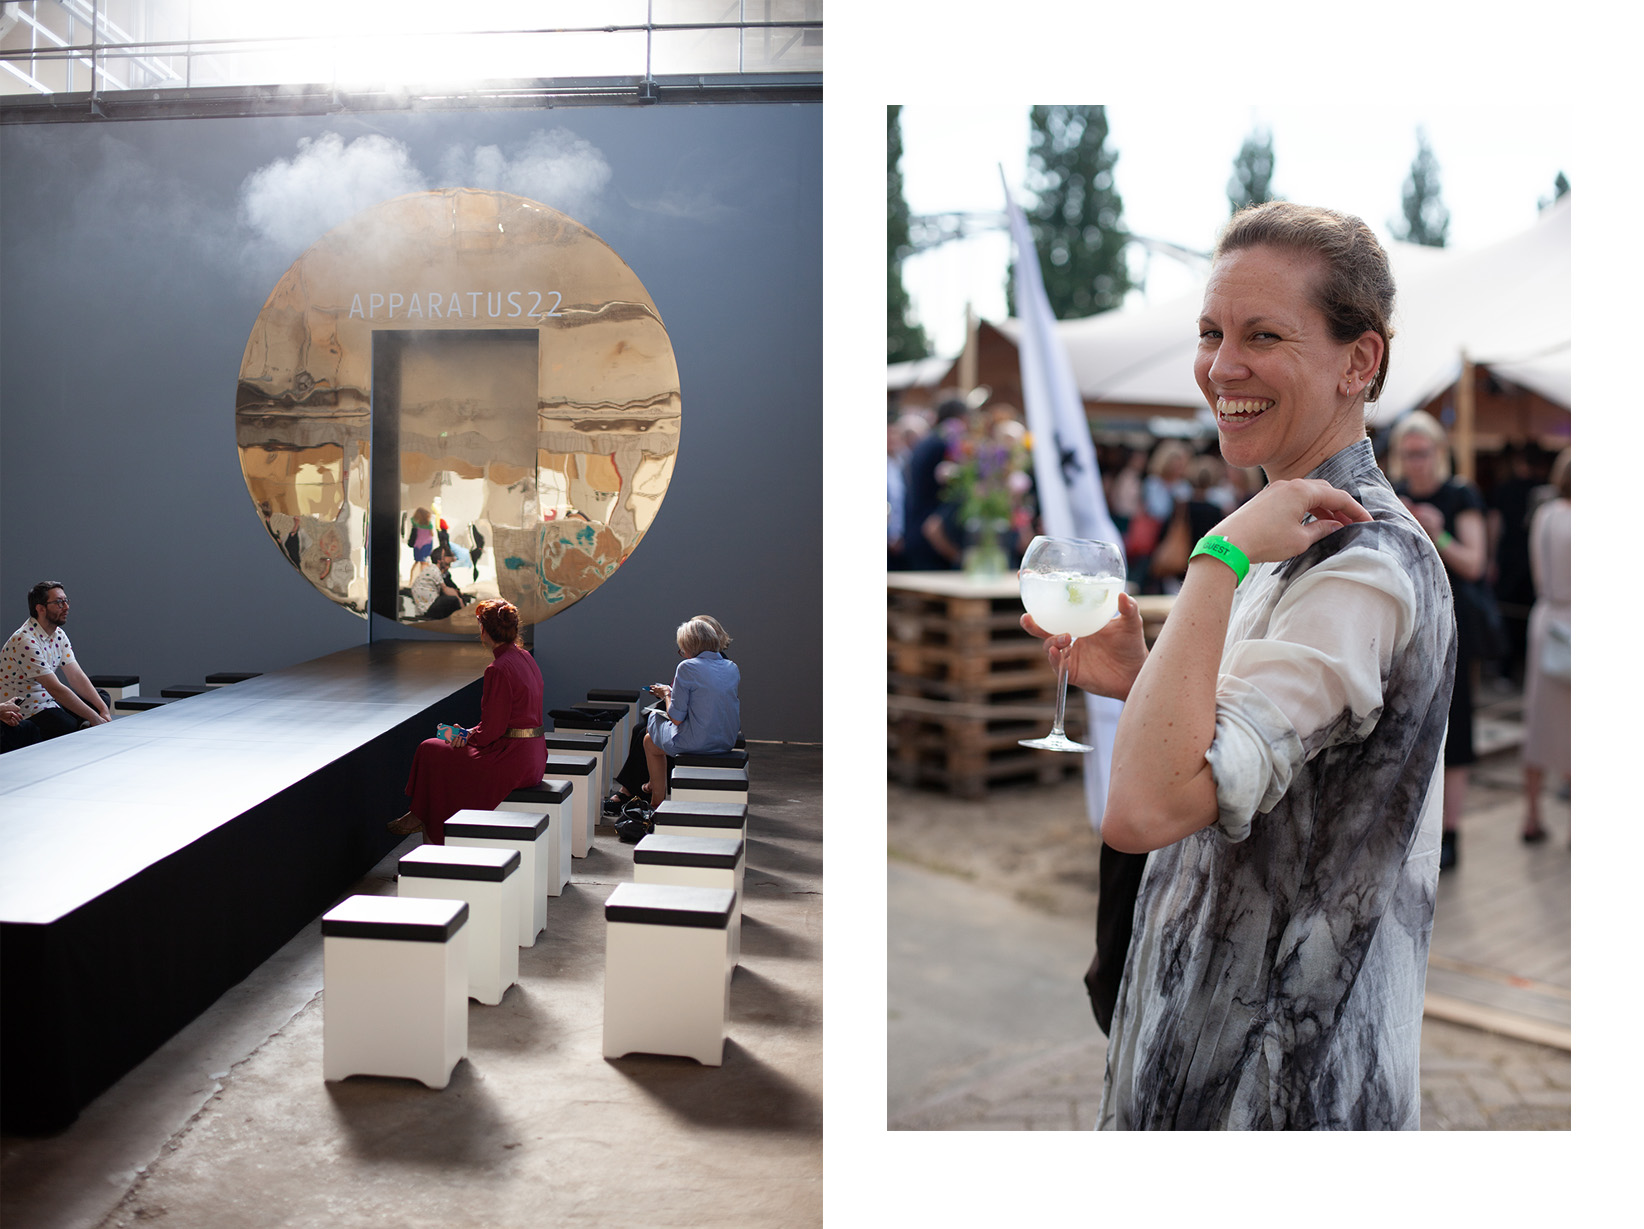 Left: Apparatus 22, a transdisciplinary art collective founded in Bucharest, Romania, right: Melanie Bomans, contributor to Refuse Magazine and lecturer at the HKU.